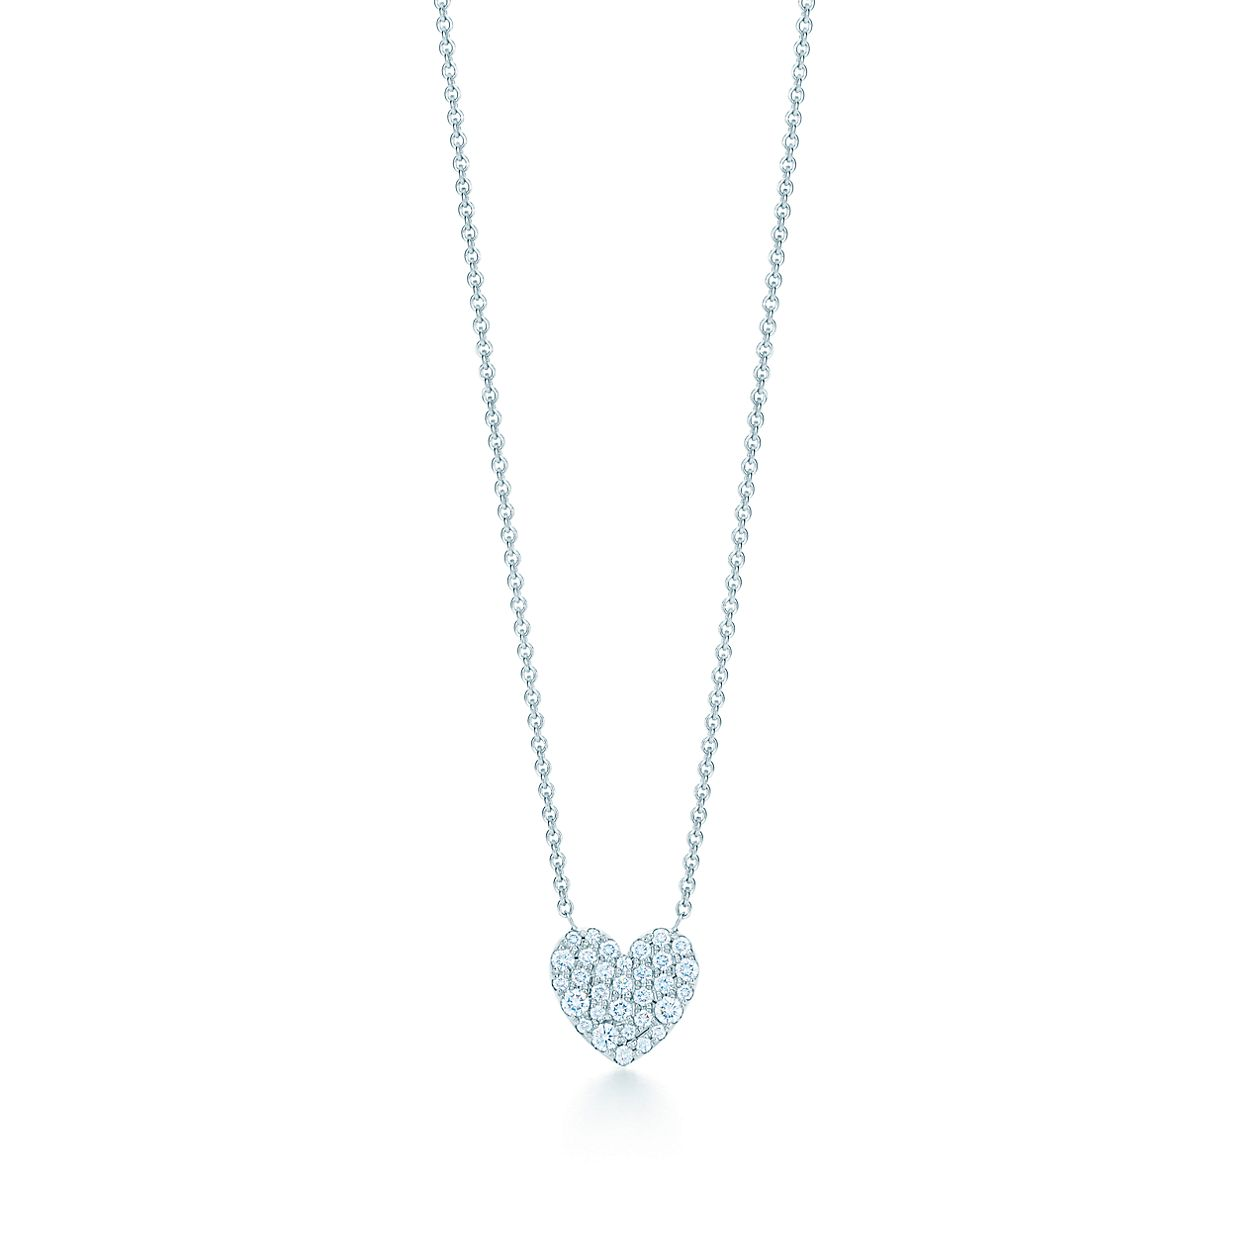 in silver sterling amazon are my the jewellery necklace clothing you only com dp one heart pendant